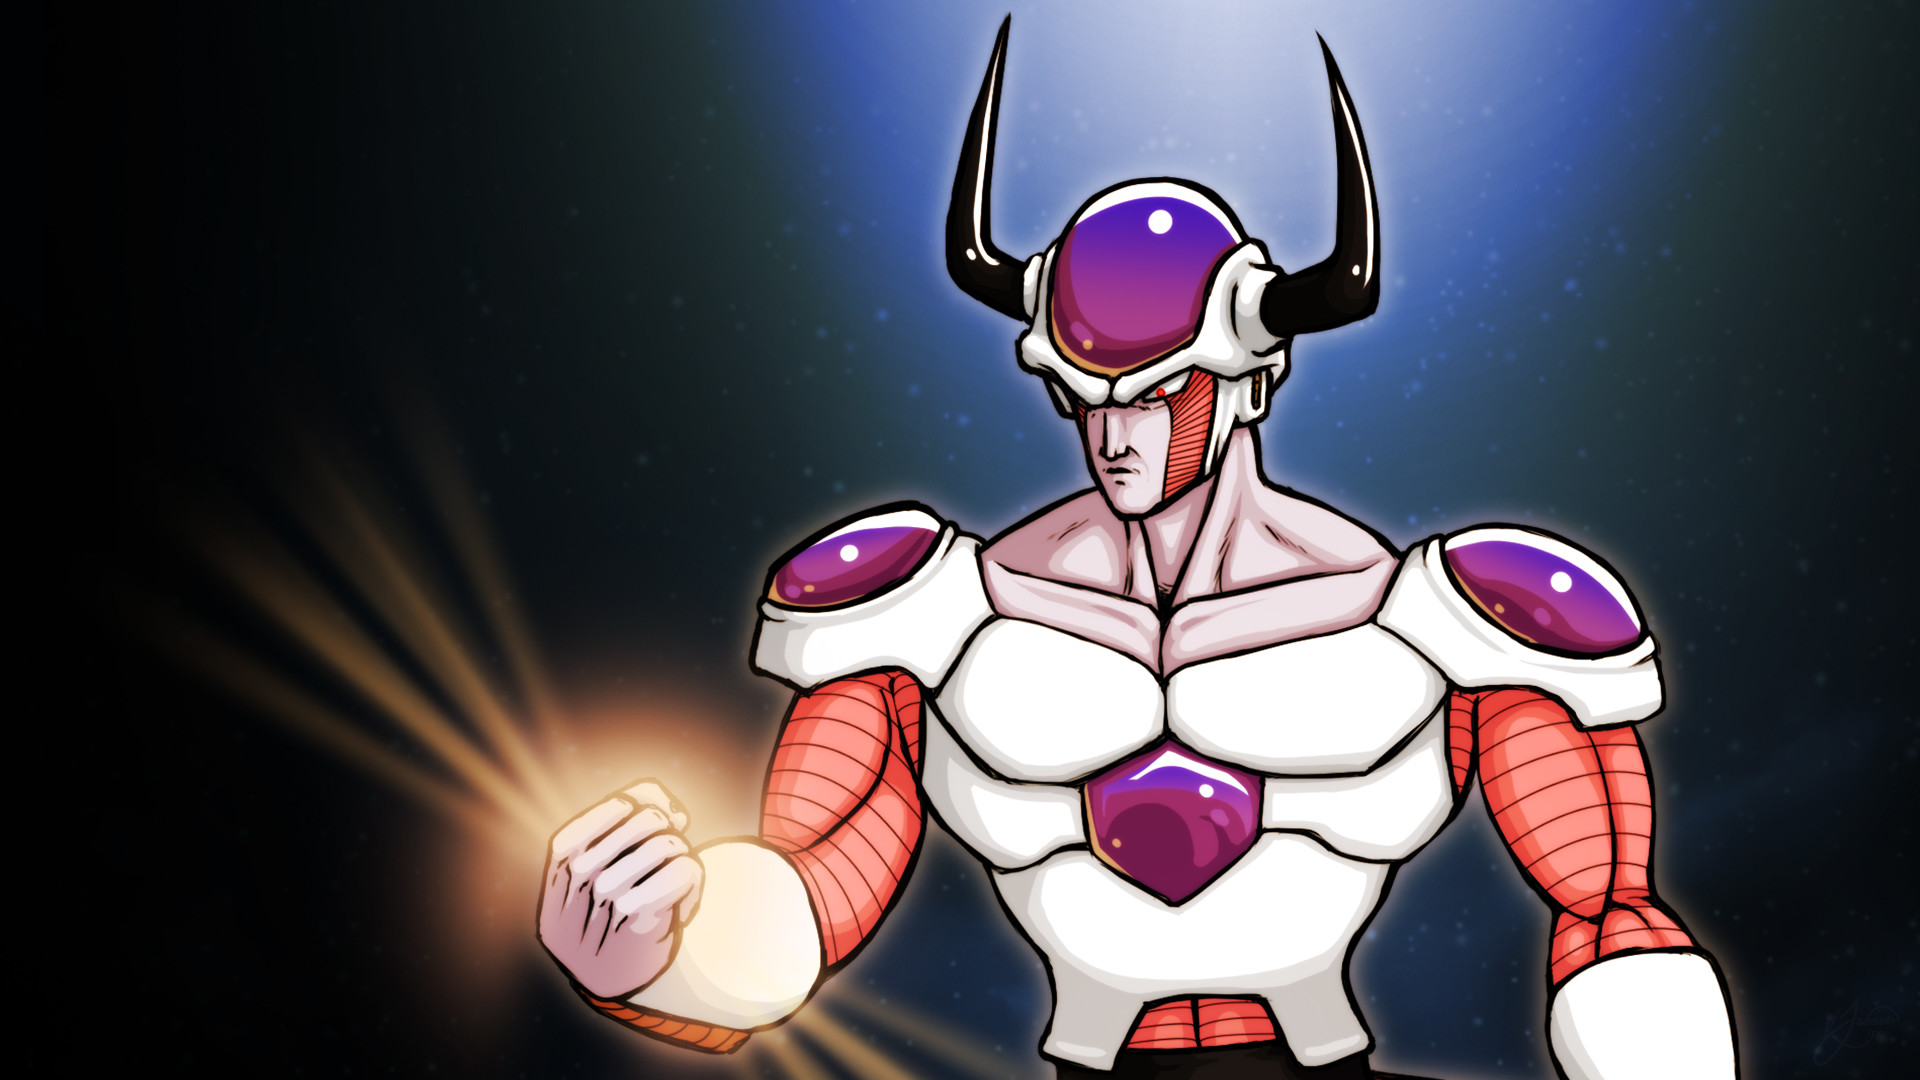 1920x1080 800x600 px; Frieza Wallpapers